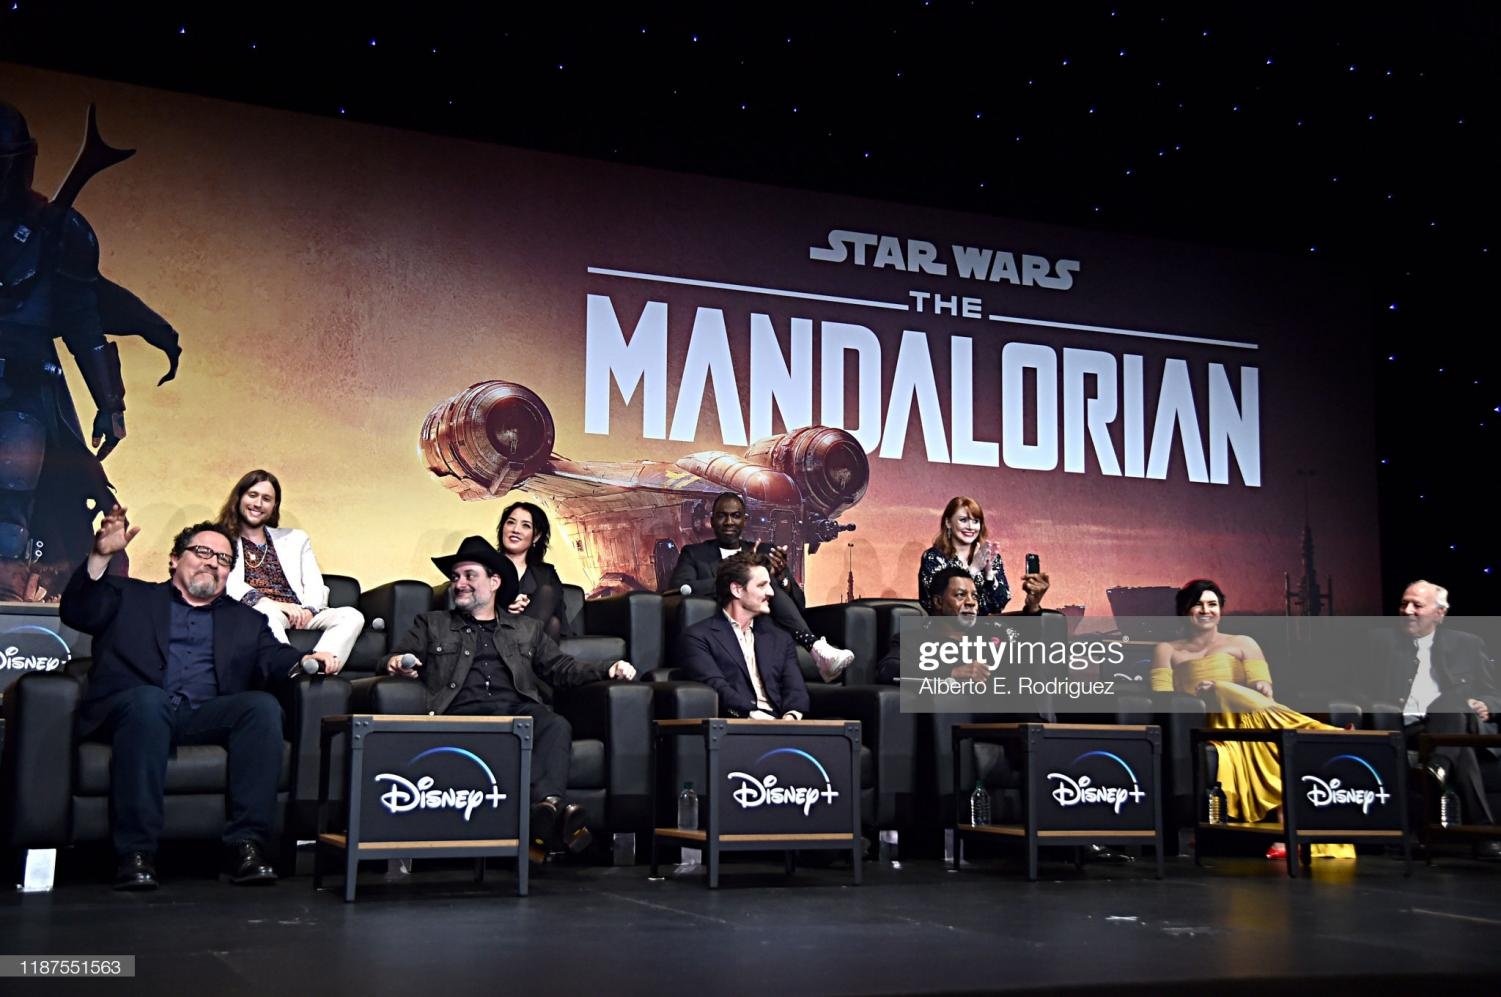 HOLLYWOOD, CALIFORNIA - NOVEMBER 13: (L-R) Executive Producer Jon Favreau, Composer Ludwig Göransson, Executive Producer/Director Dave Filoni, Director Deborah Chow, Pedro Pascal, Rick Famuyiwa, Carl Weathers, Director Bryce Dallas Howard, Gina Carano and Werner Herzog speak onstage at the premiere of Lucasfilm's first-ever, live-action series,